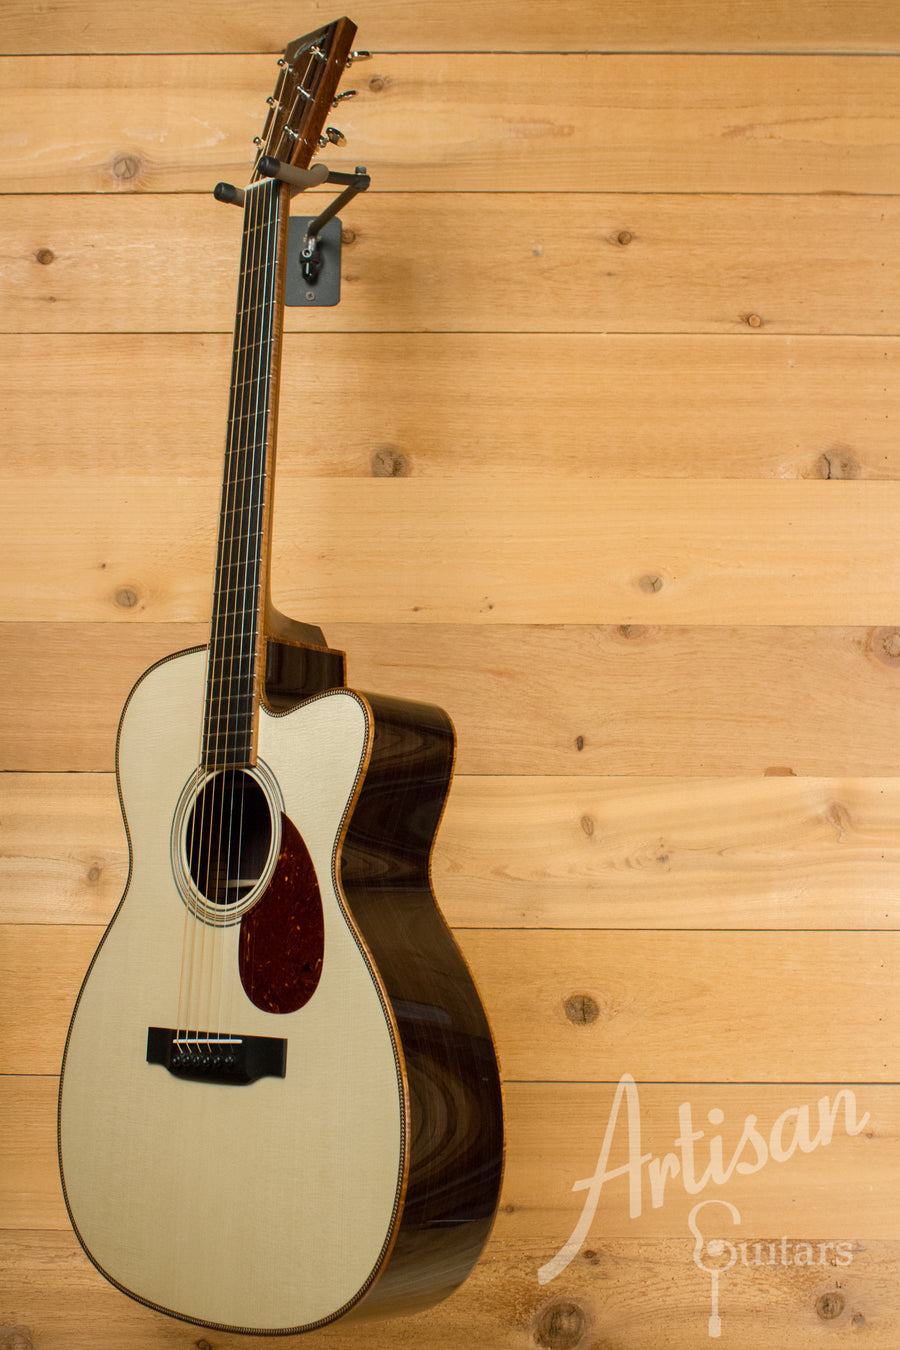 Collings OM2H E Guitar Cutaway Engelmann Spruce and Indian Rosewood with Koa Binding ID-10929 - Artisan Guitars